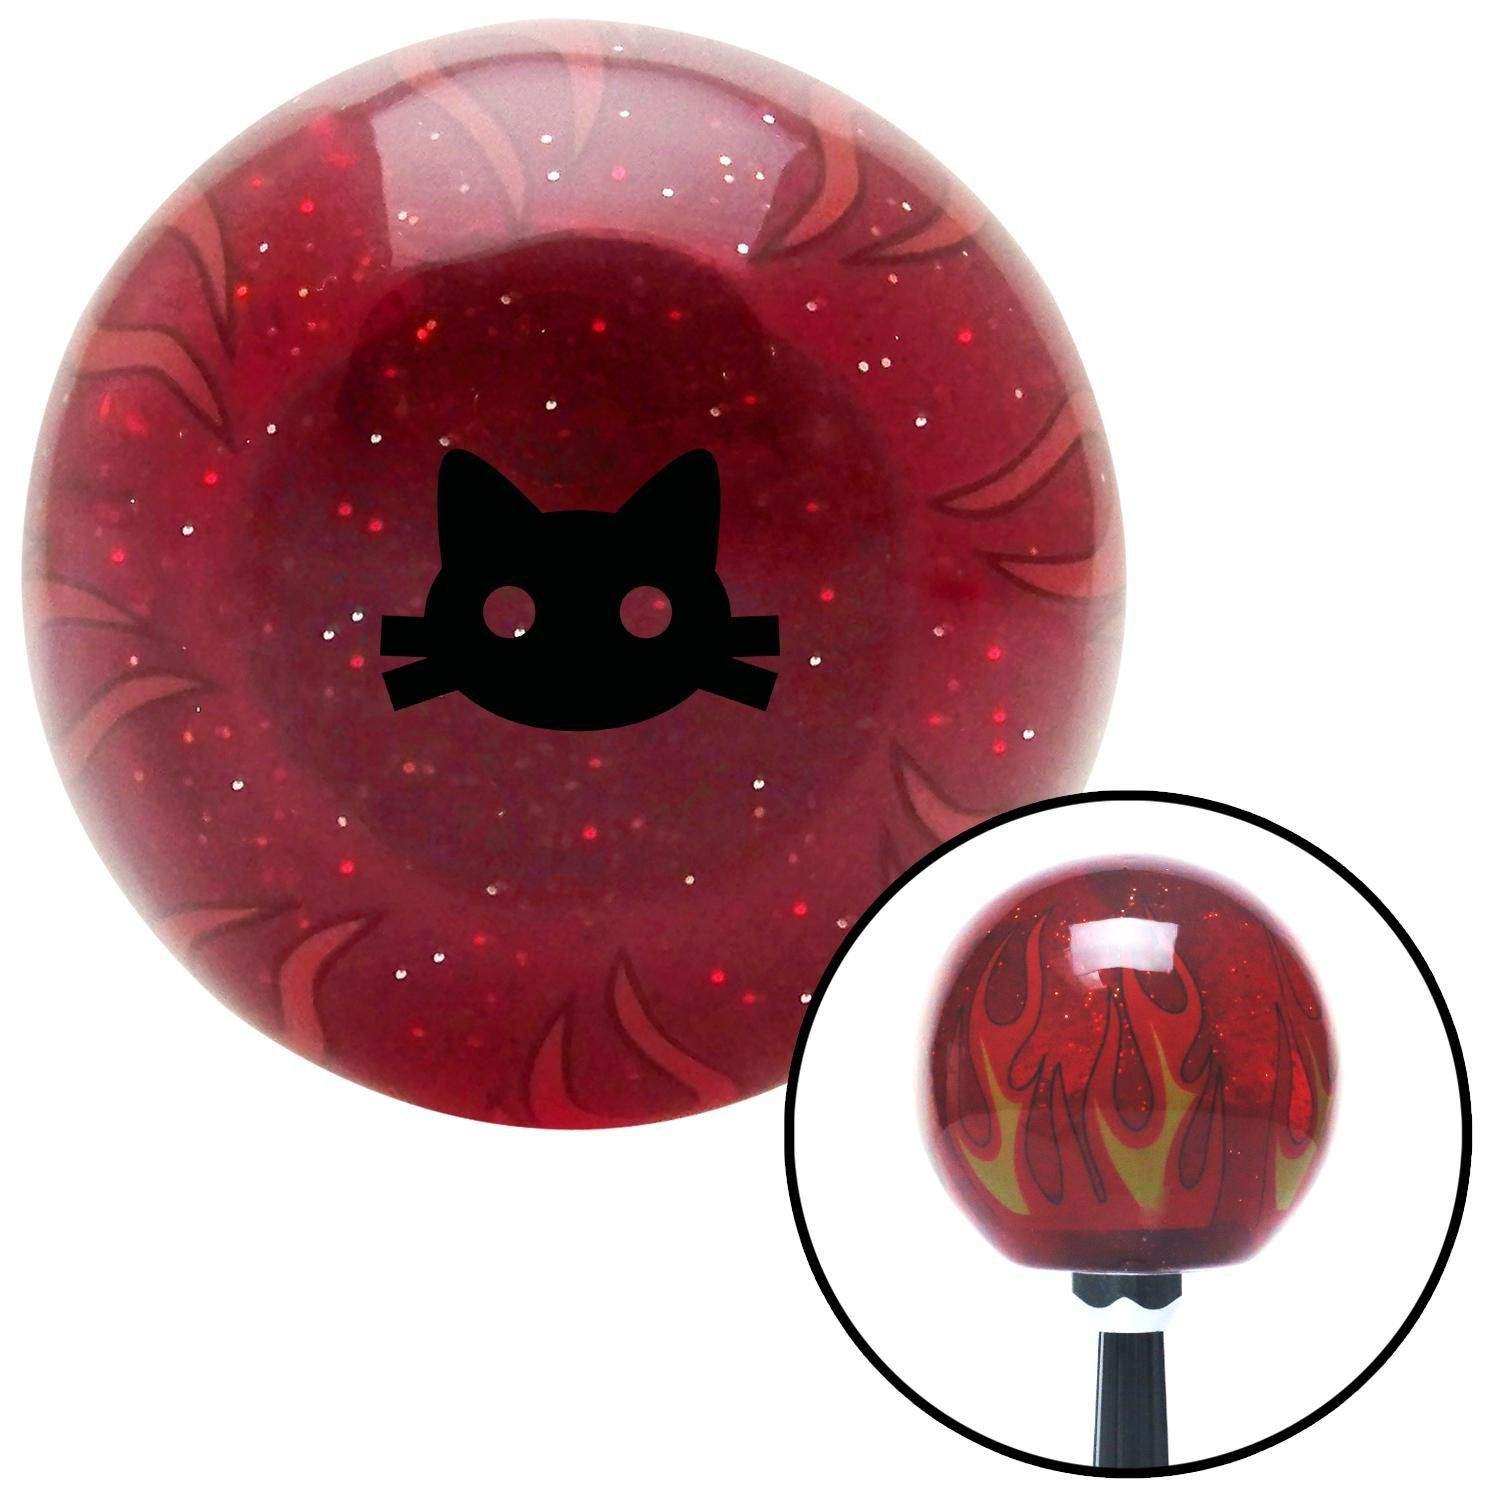 American Shifter 296460 Shift Knob Black Cat Silhouette 2 Red Flame Metal Flake with M16 x 1.5 Insert